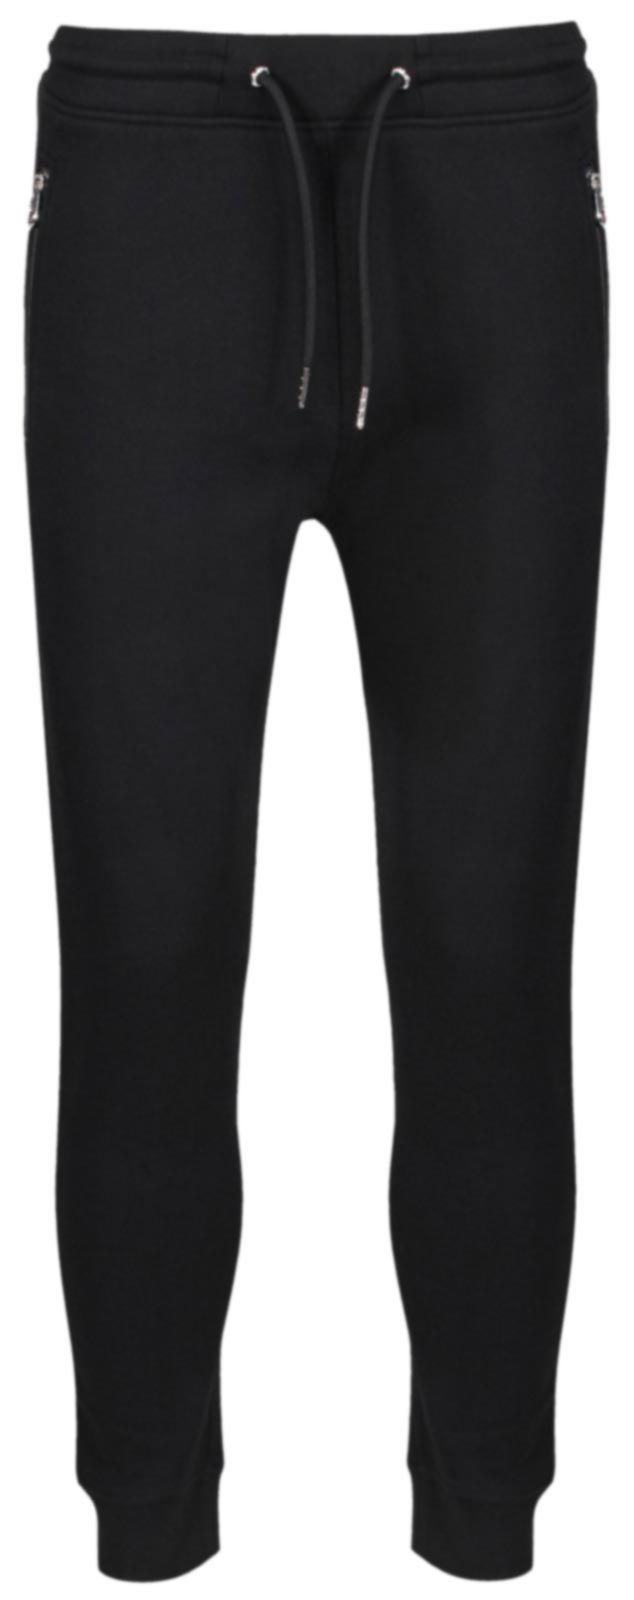 Luke 1977 Rome 2 Jogger Bottoms Black